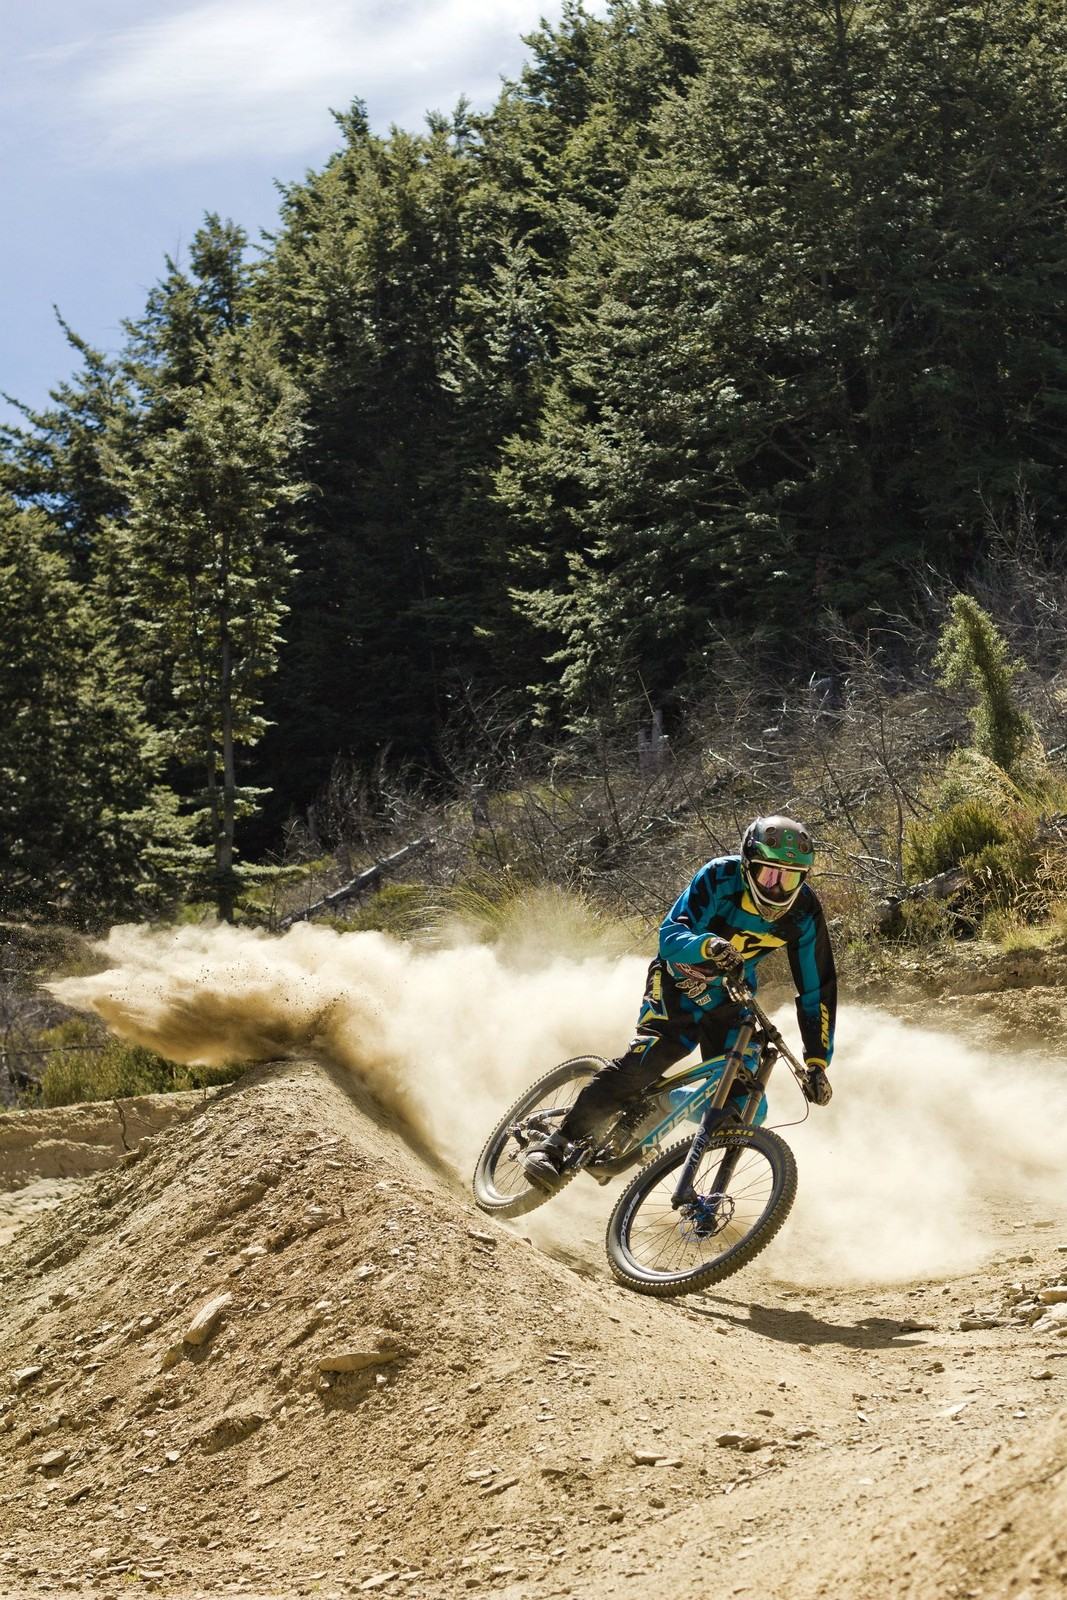 Chris roostin - Banditdh - Mountain Biking Pictures - Vital MTB